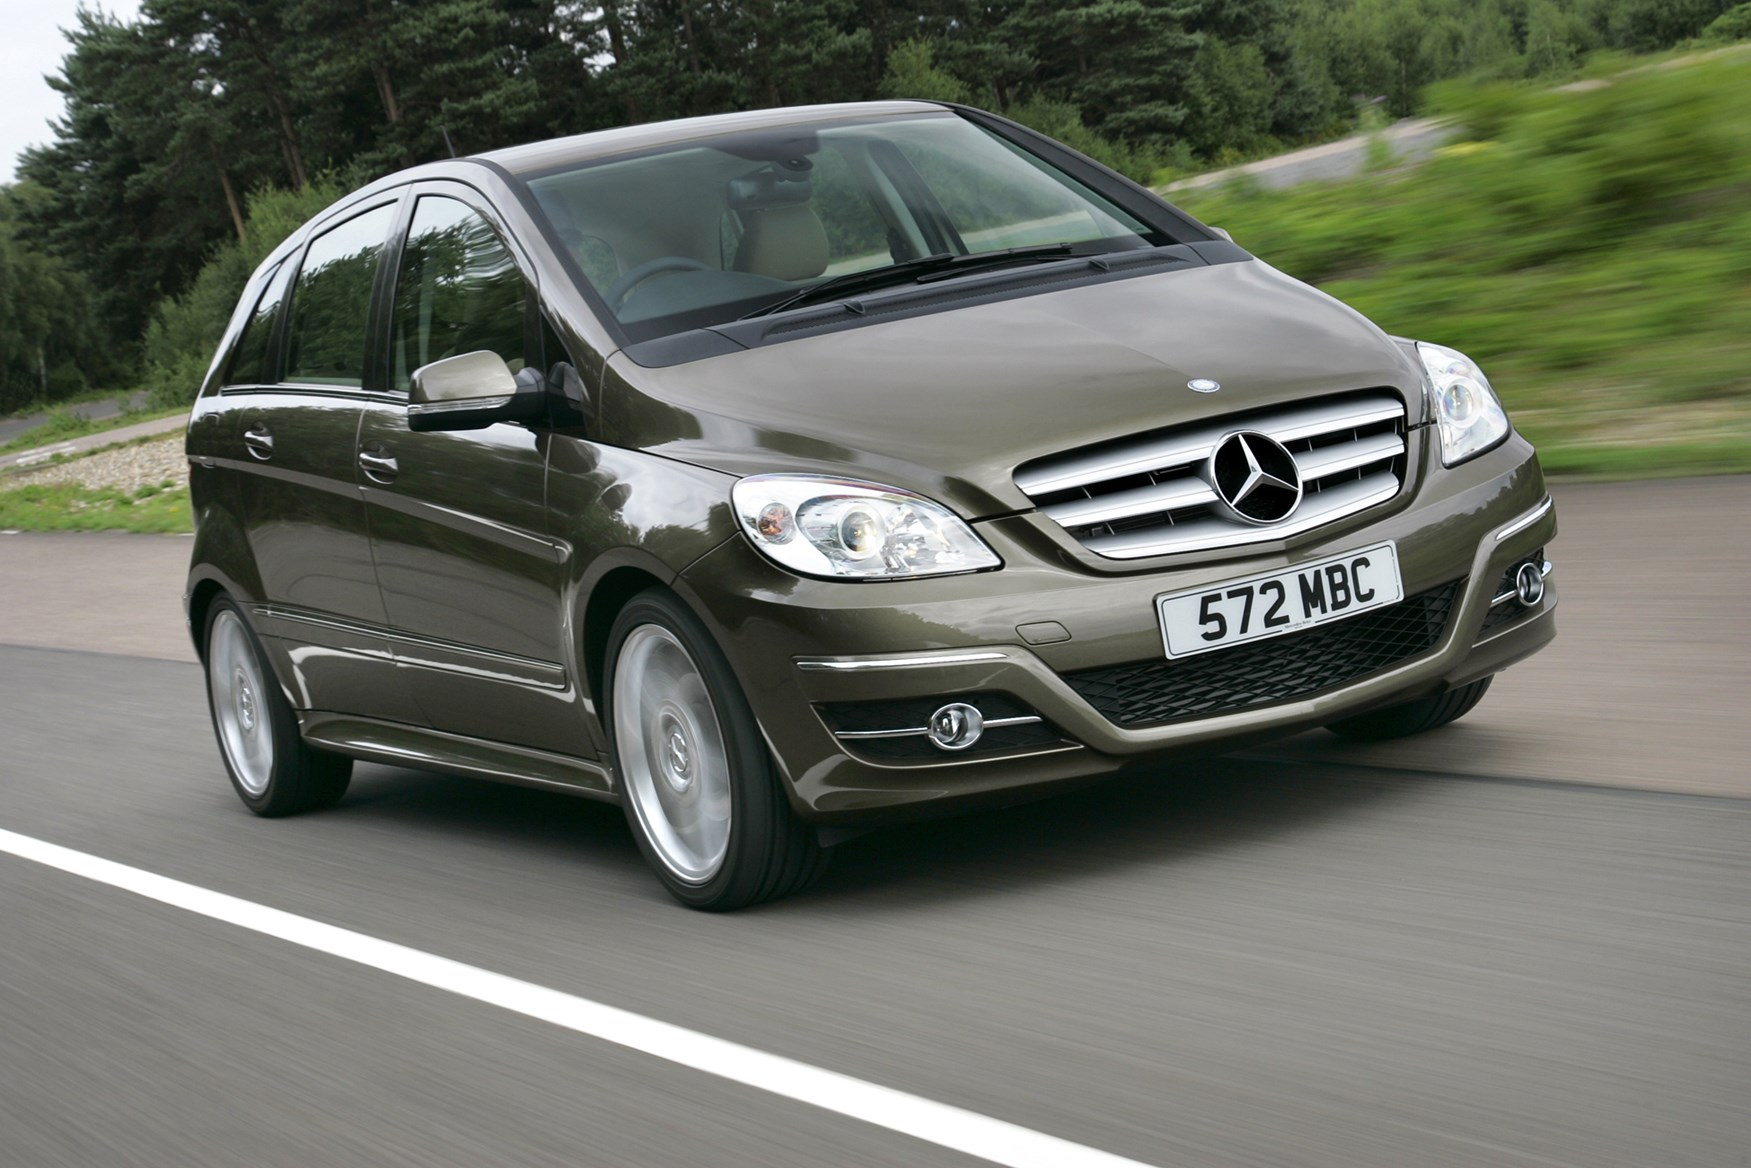 View all images of the mercedes benz b class 05 11